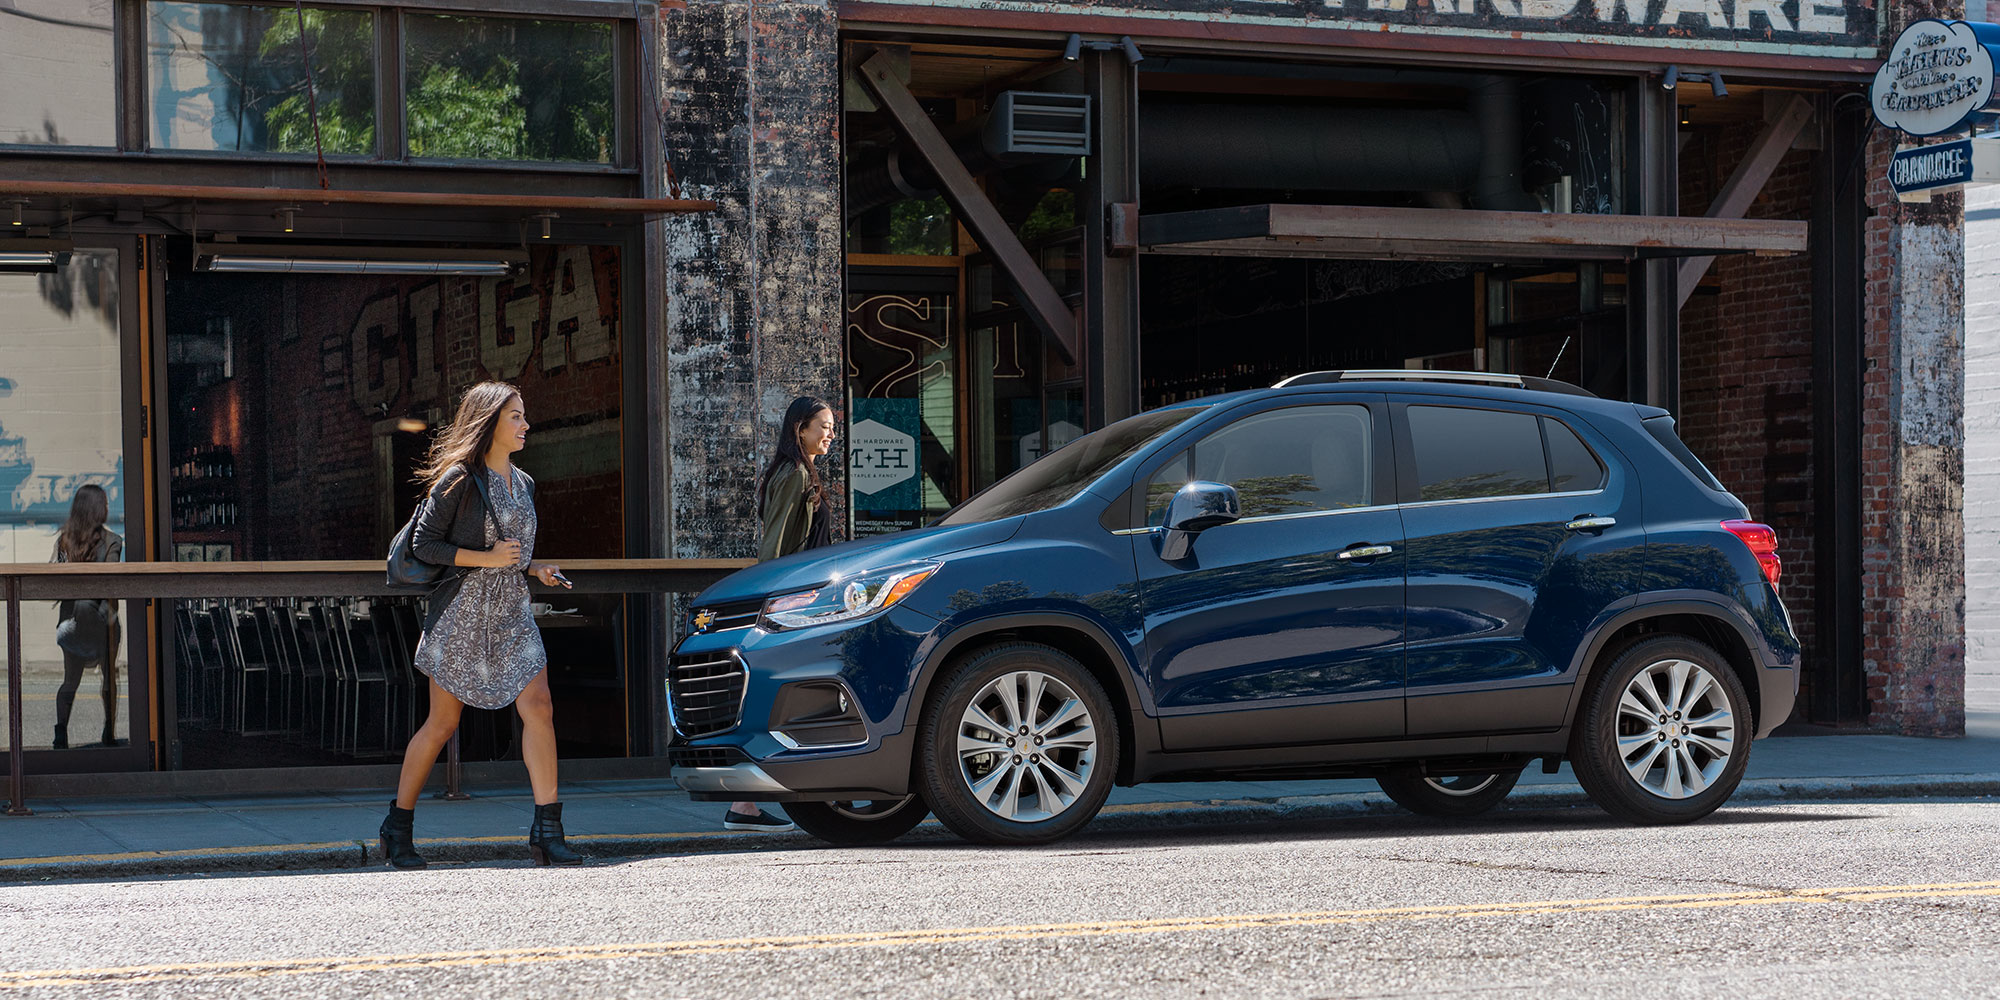 2020 Chevrolet Trax for Sale near Lapeer, MI